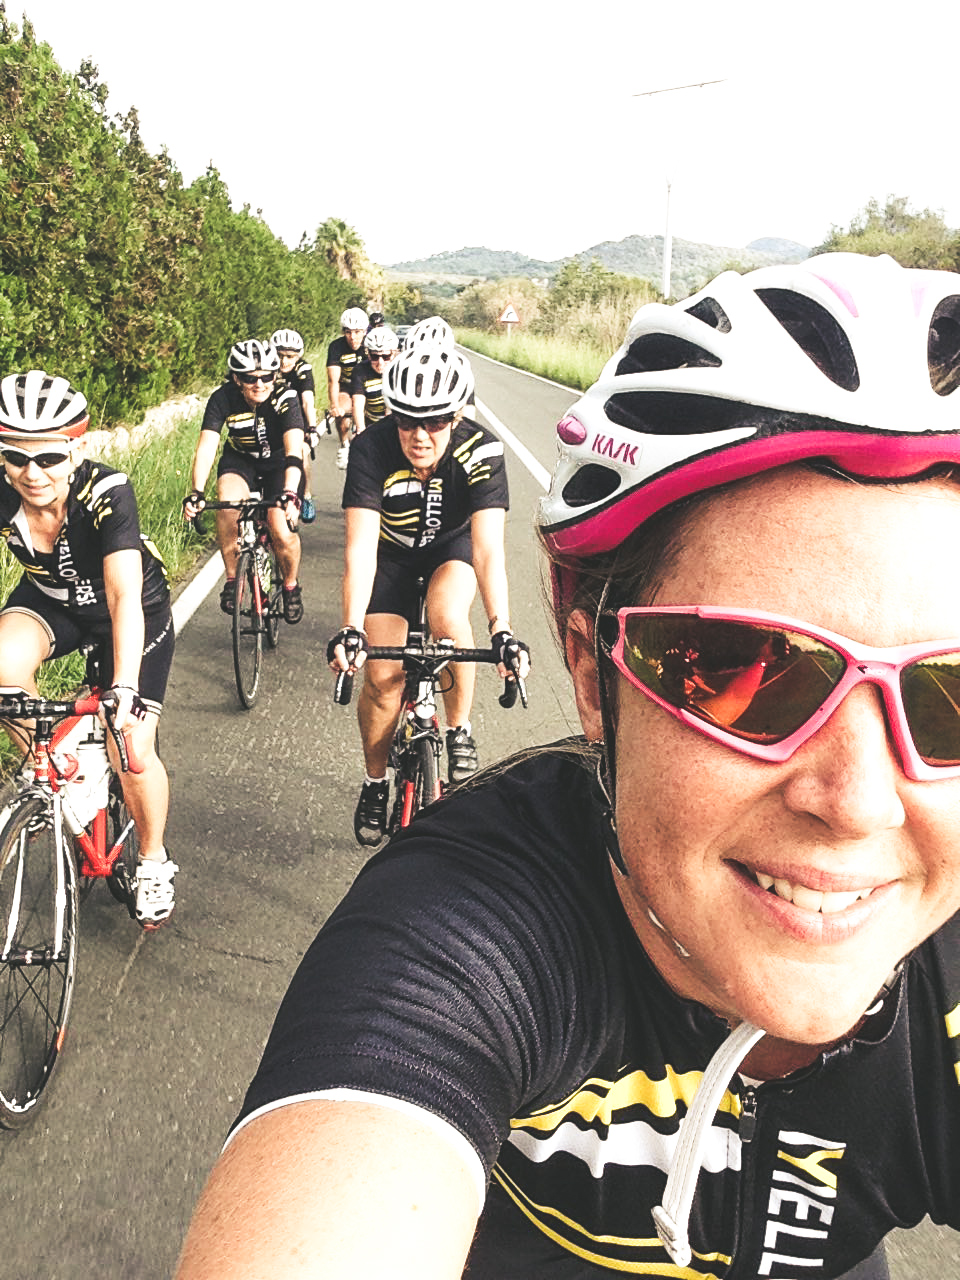 - Debbie rides for a UK based team and has raced at events all over the world. Heading to Mallorca as often as she can for training, she loves helping women improve their riding and encouraging themselves to challenge themselves a little!